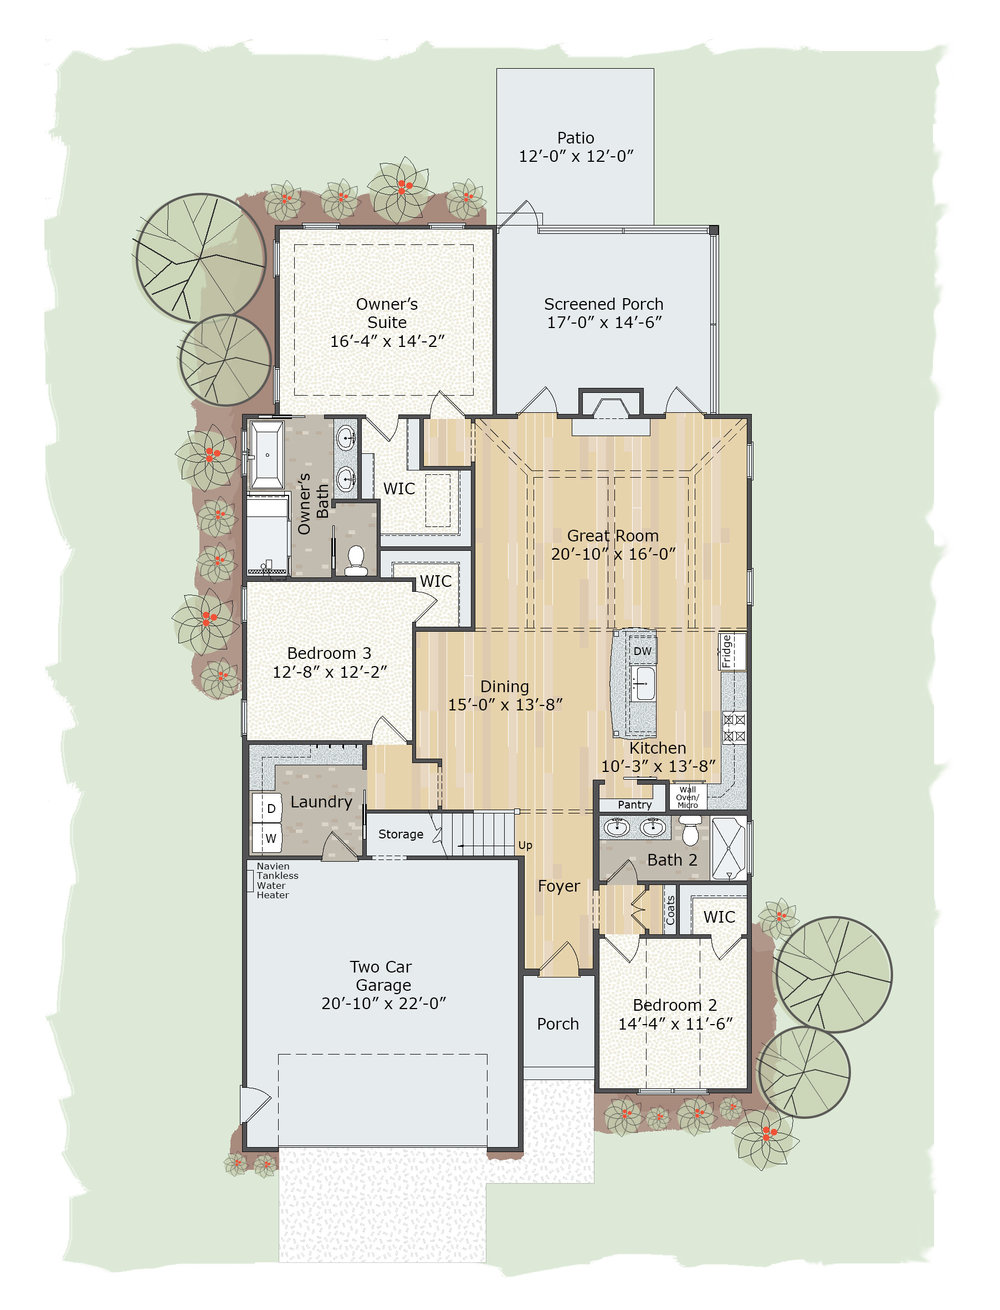 Lot_846_Floorplan_First_Floor.jpg